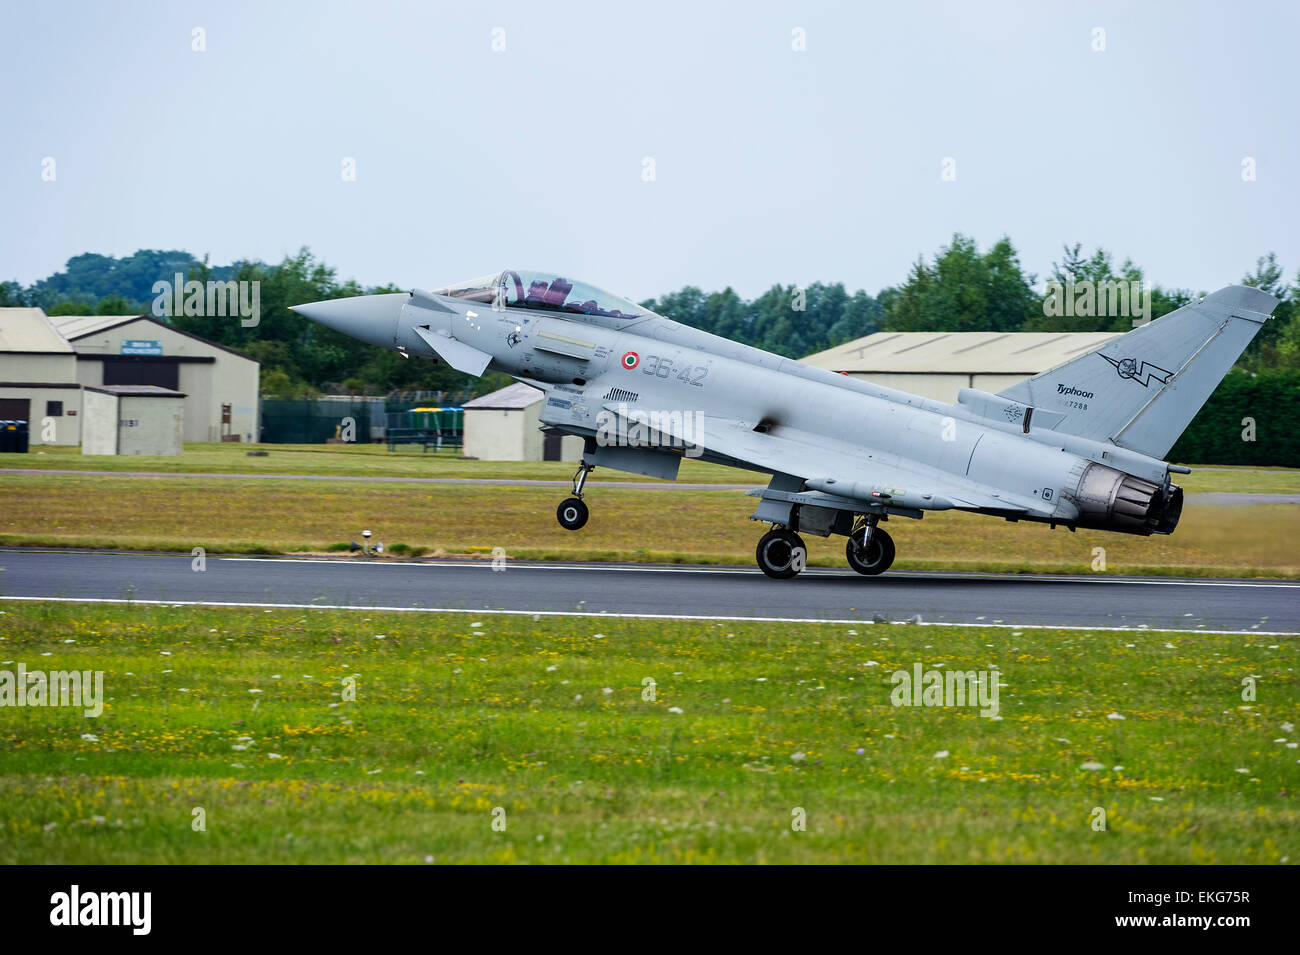 italian Air Force Typhoon F-2000A Eurofighter Stock Photo